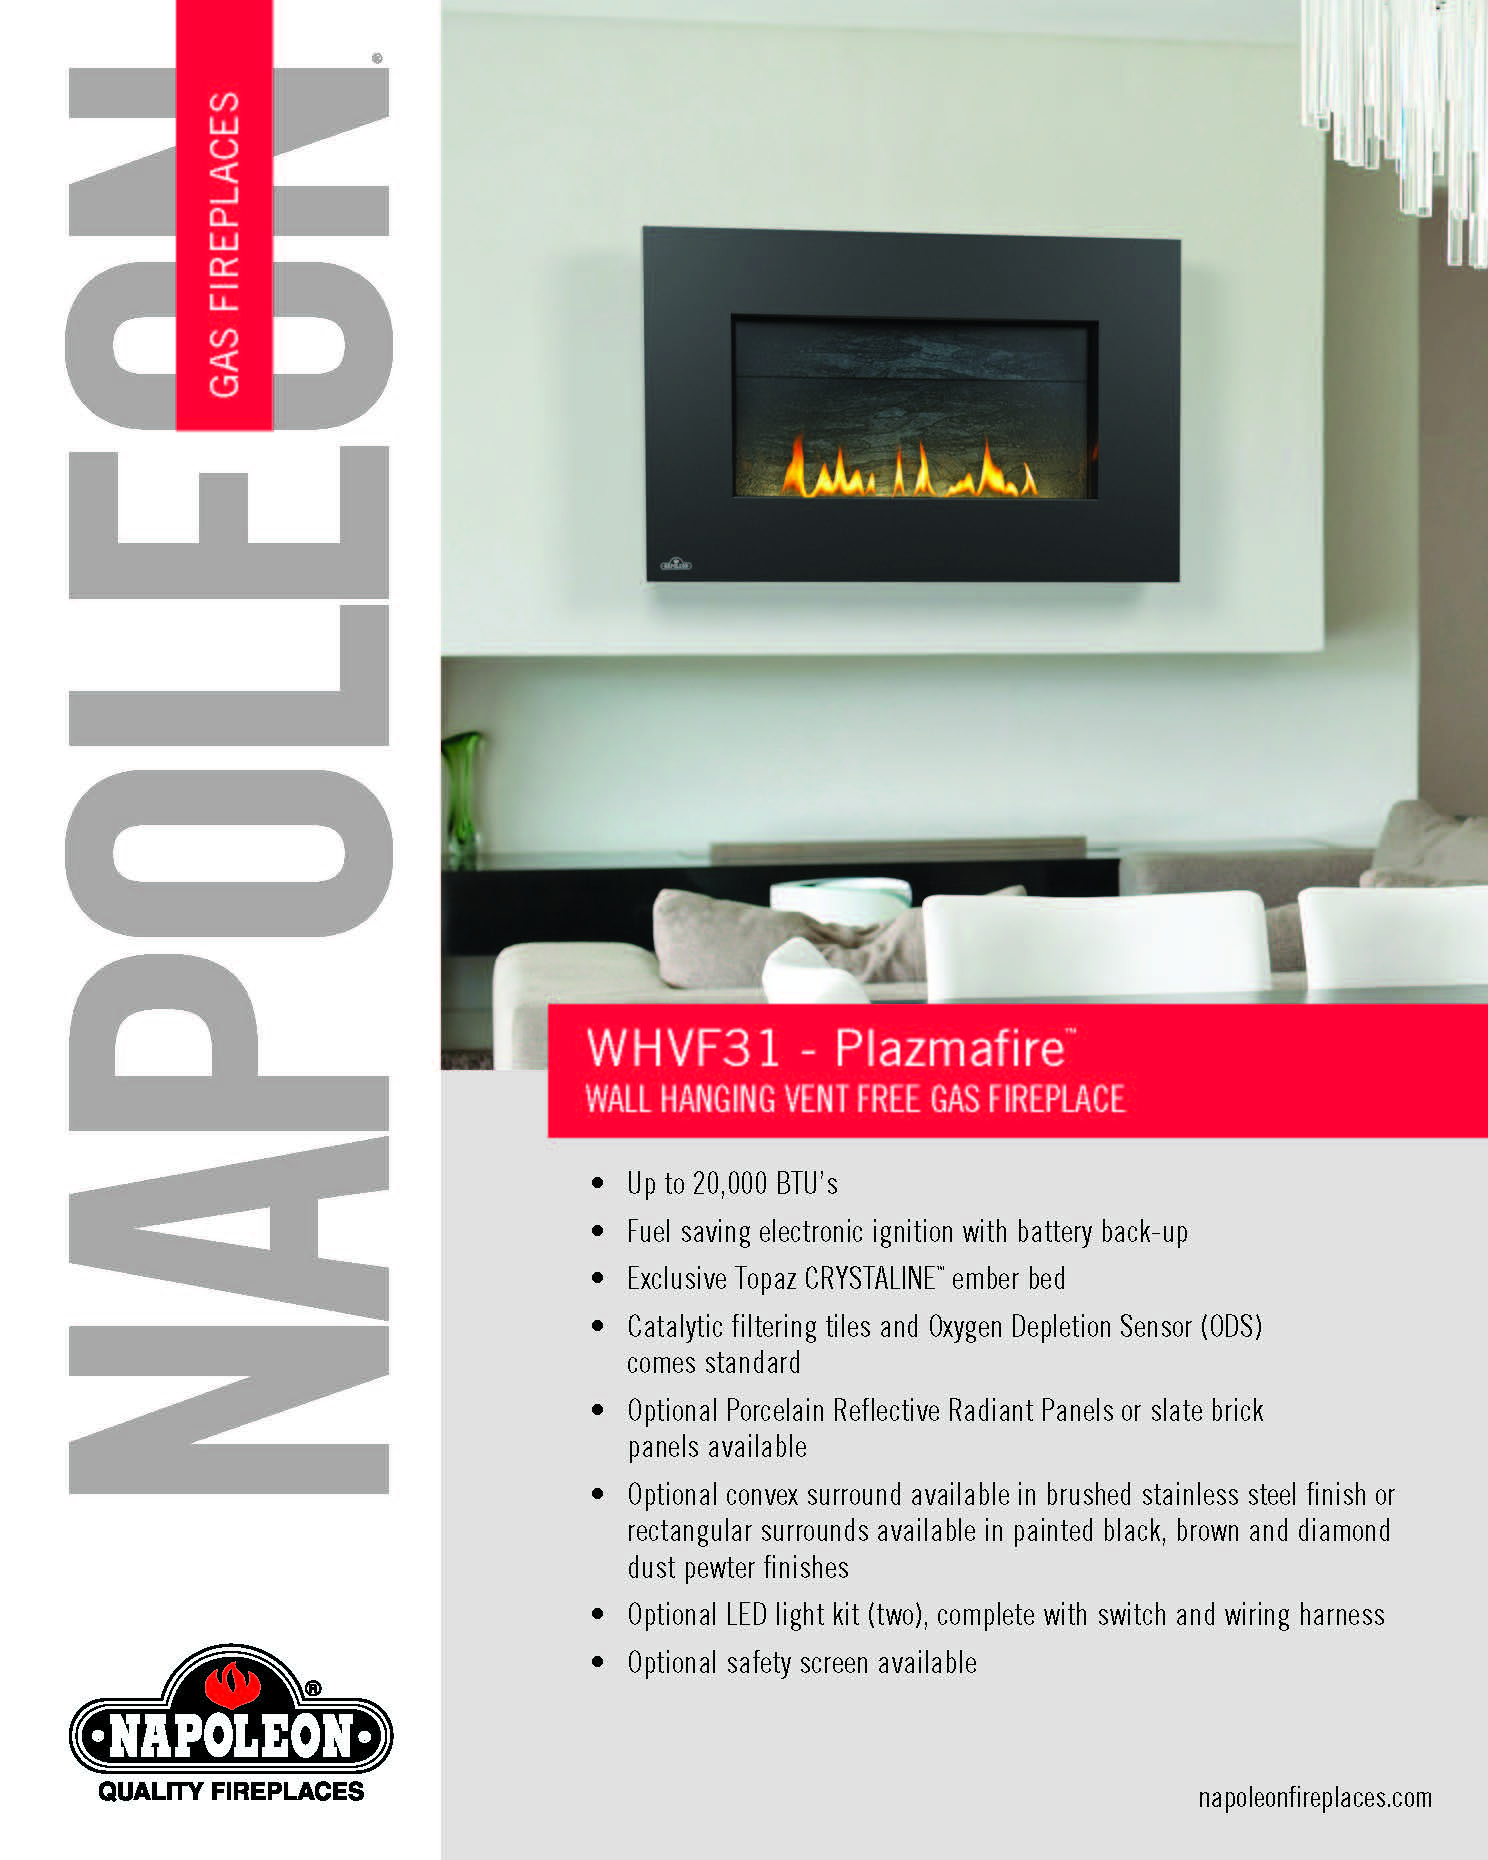 whd31 plazmafire wall hanging direct vent gas fireplace